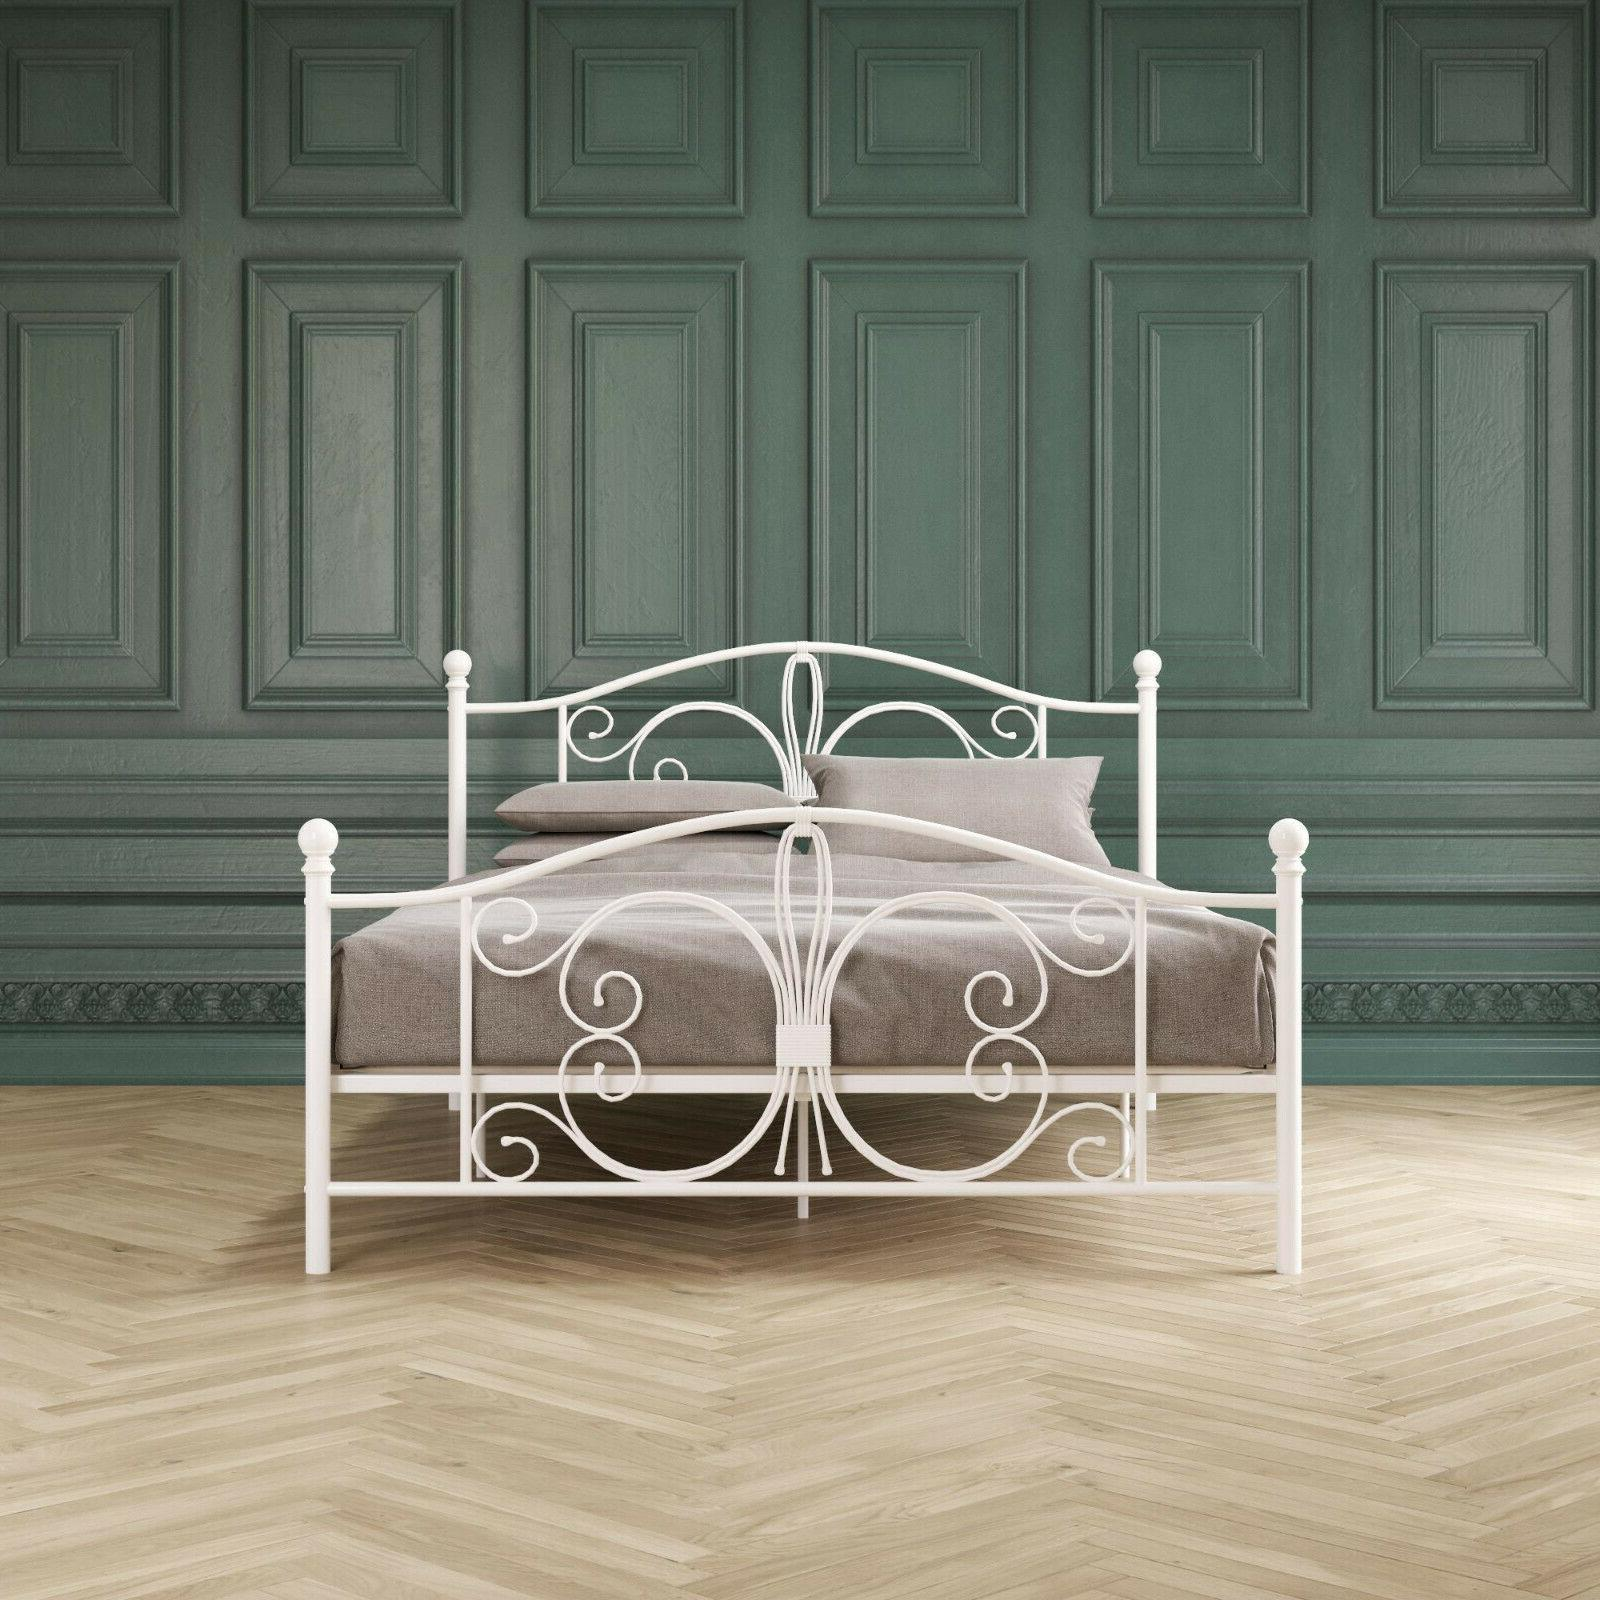 White Bed Butterfly pattern KING size